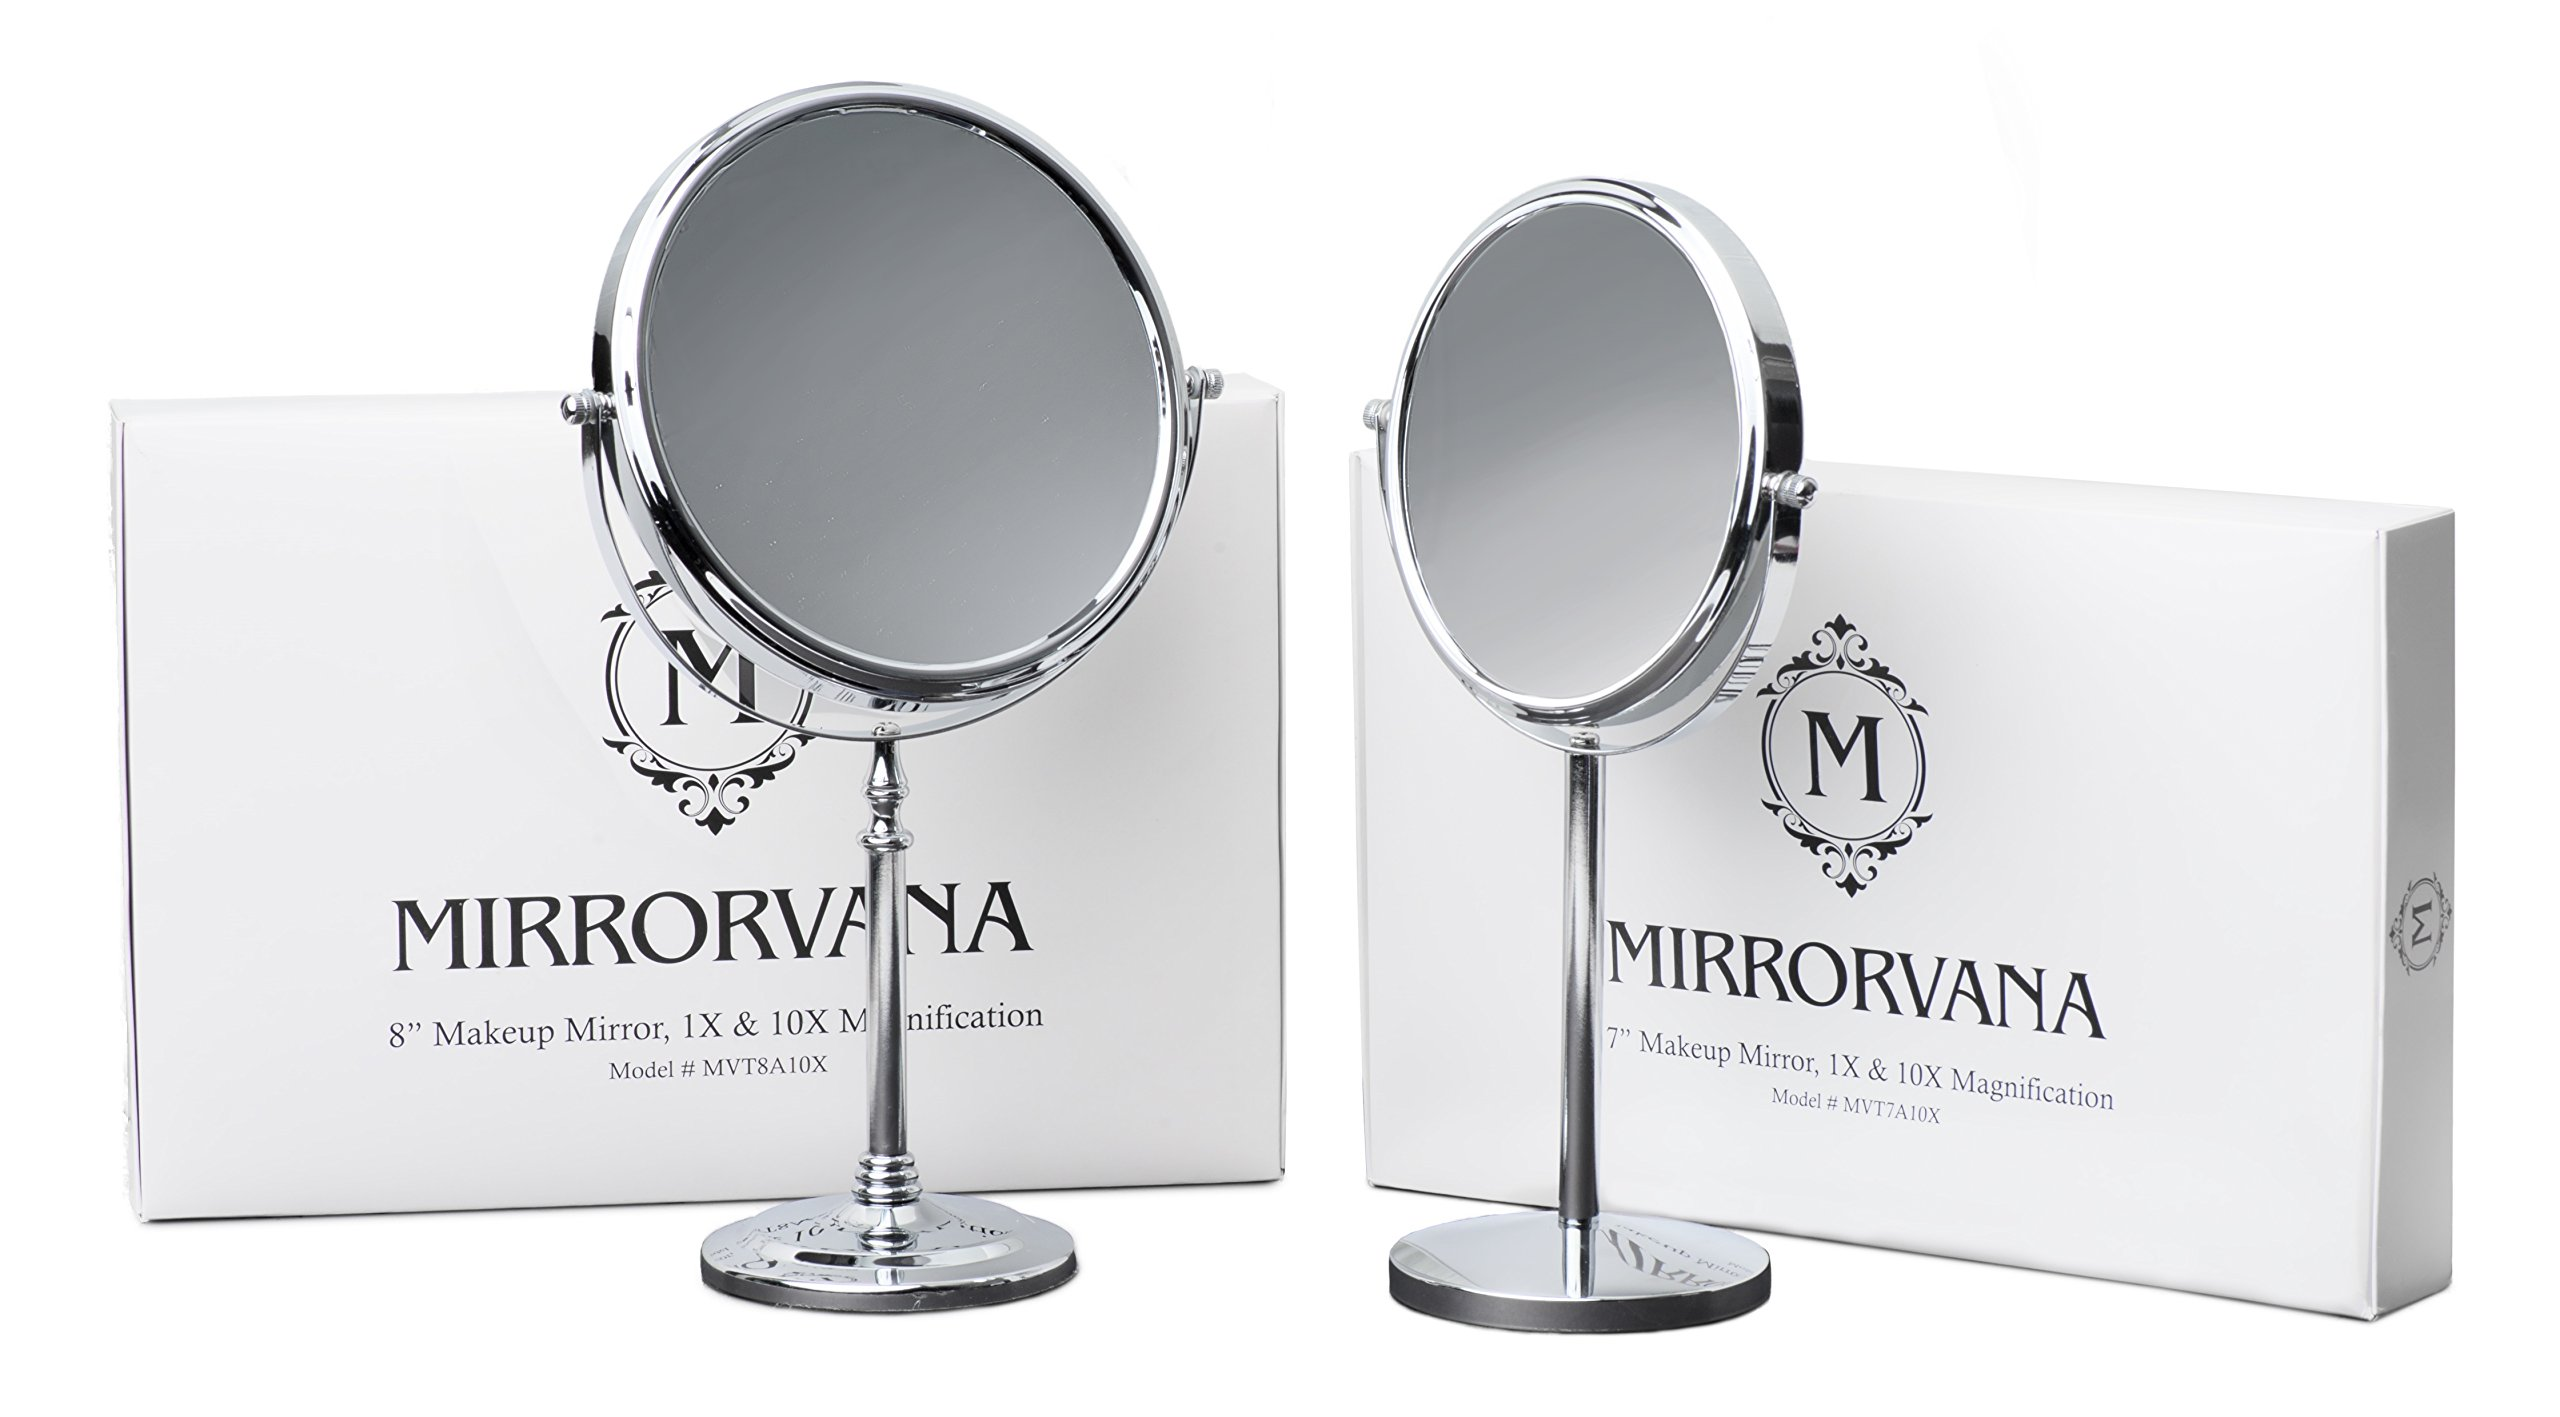 Mirrorvana 8-Inch Vanity Makeup Mirror (10pcs), Dual-Sided 1X and 10X Magnification, Gift Set Packaging